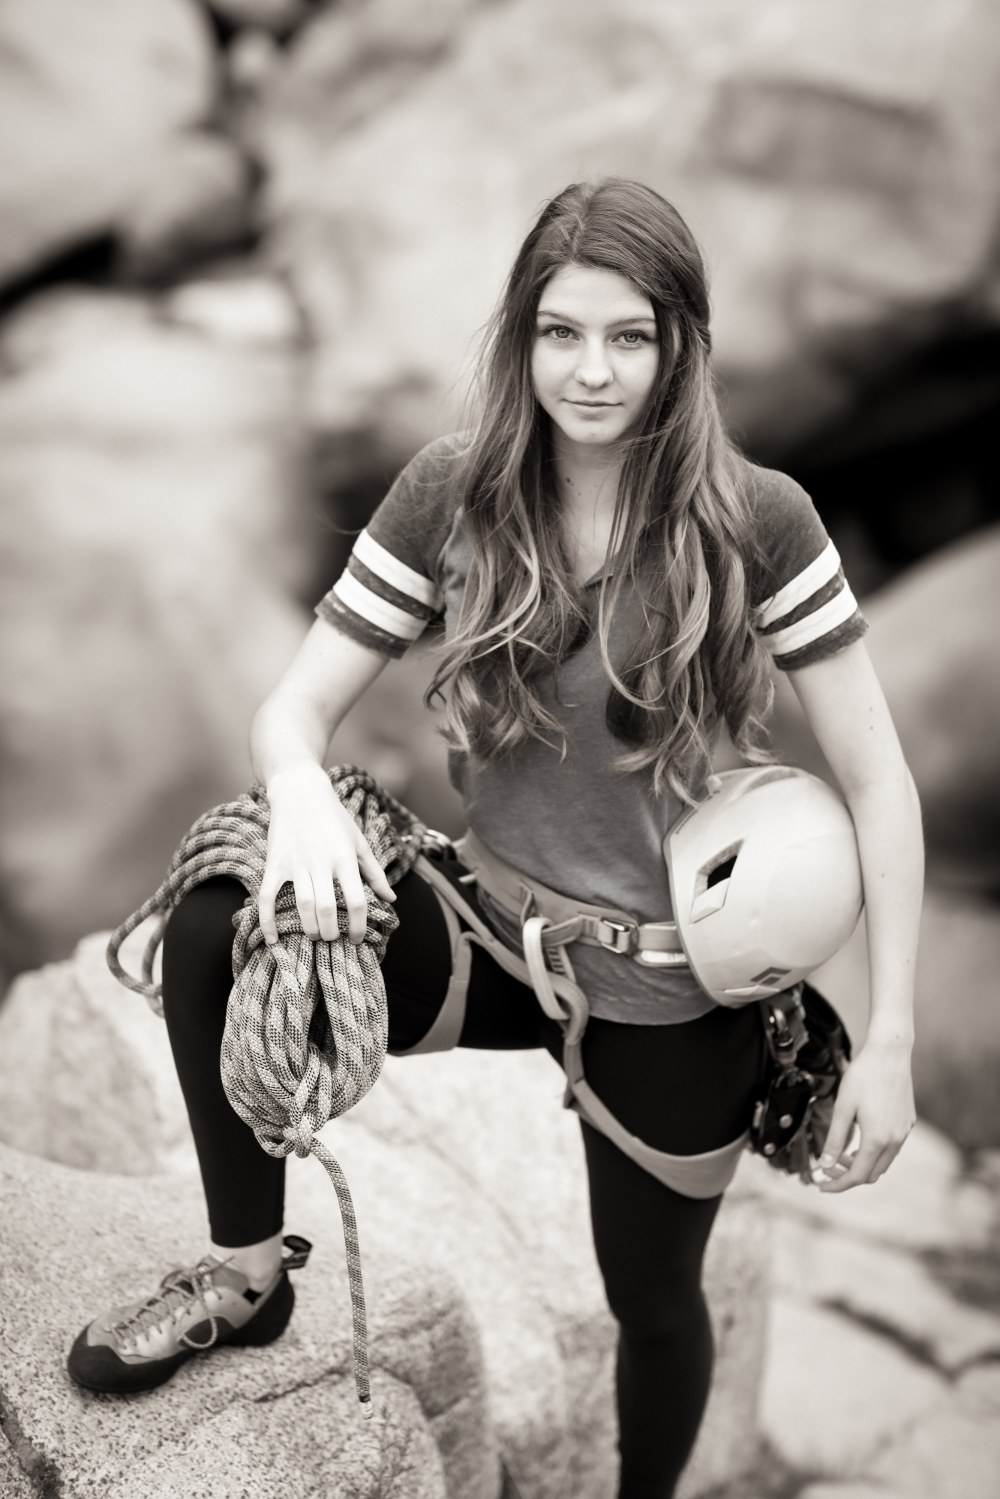 highland_highschool_senior_portraits_bakersfield_ca_kern_river_rock_climbing_tierra_by_cassia_karin_photography_favorites-15